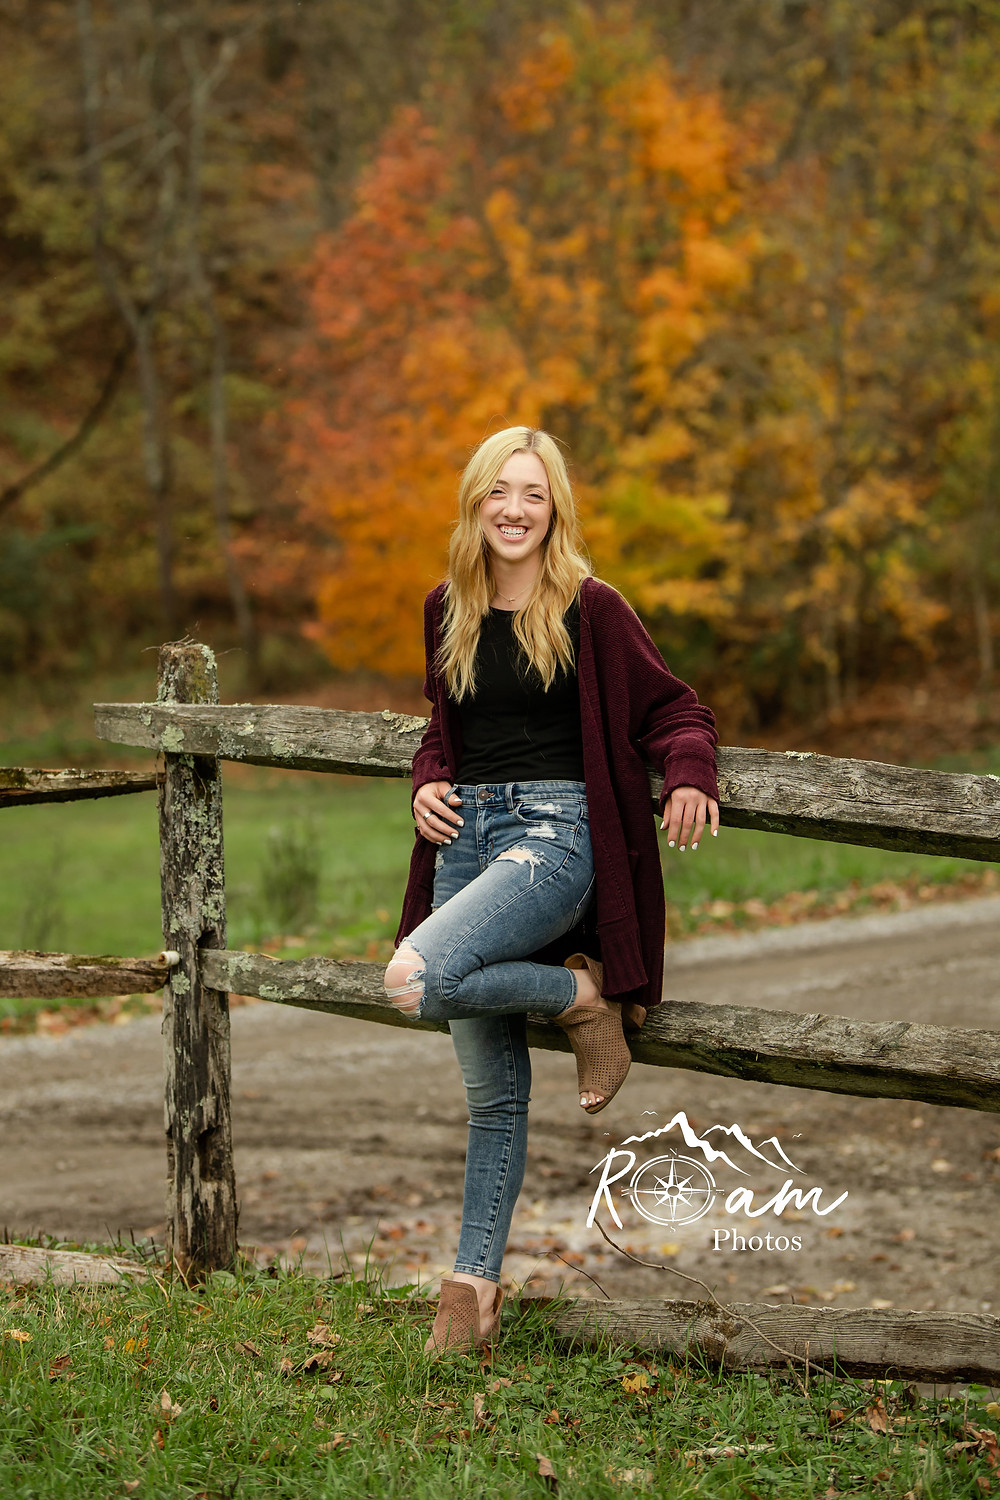 Senior photos of a young girl leaning on a fence.